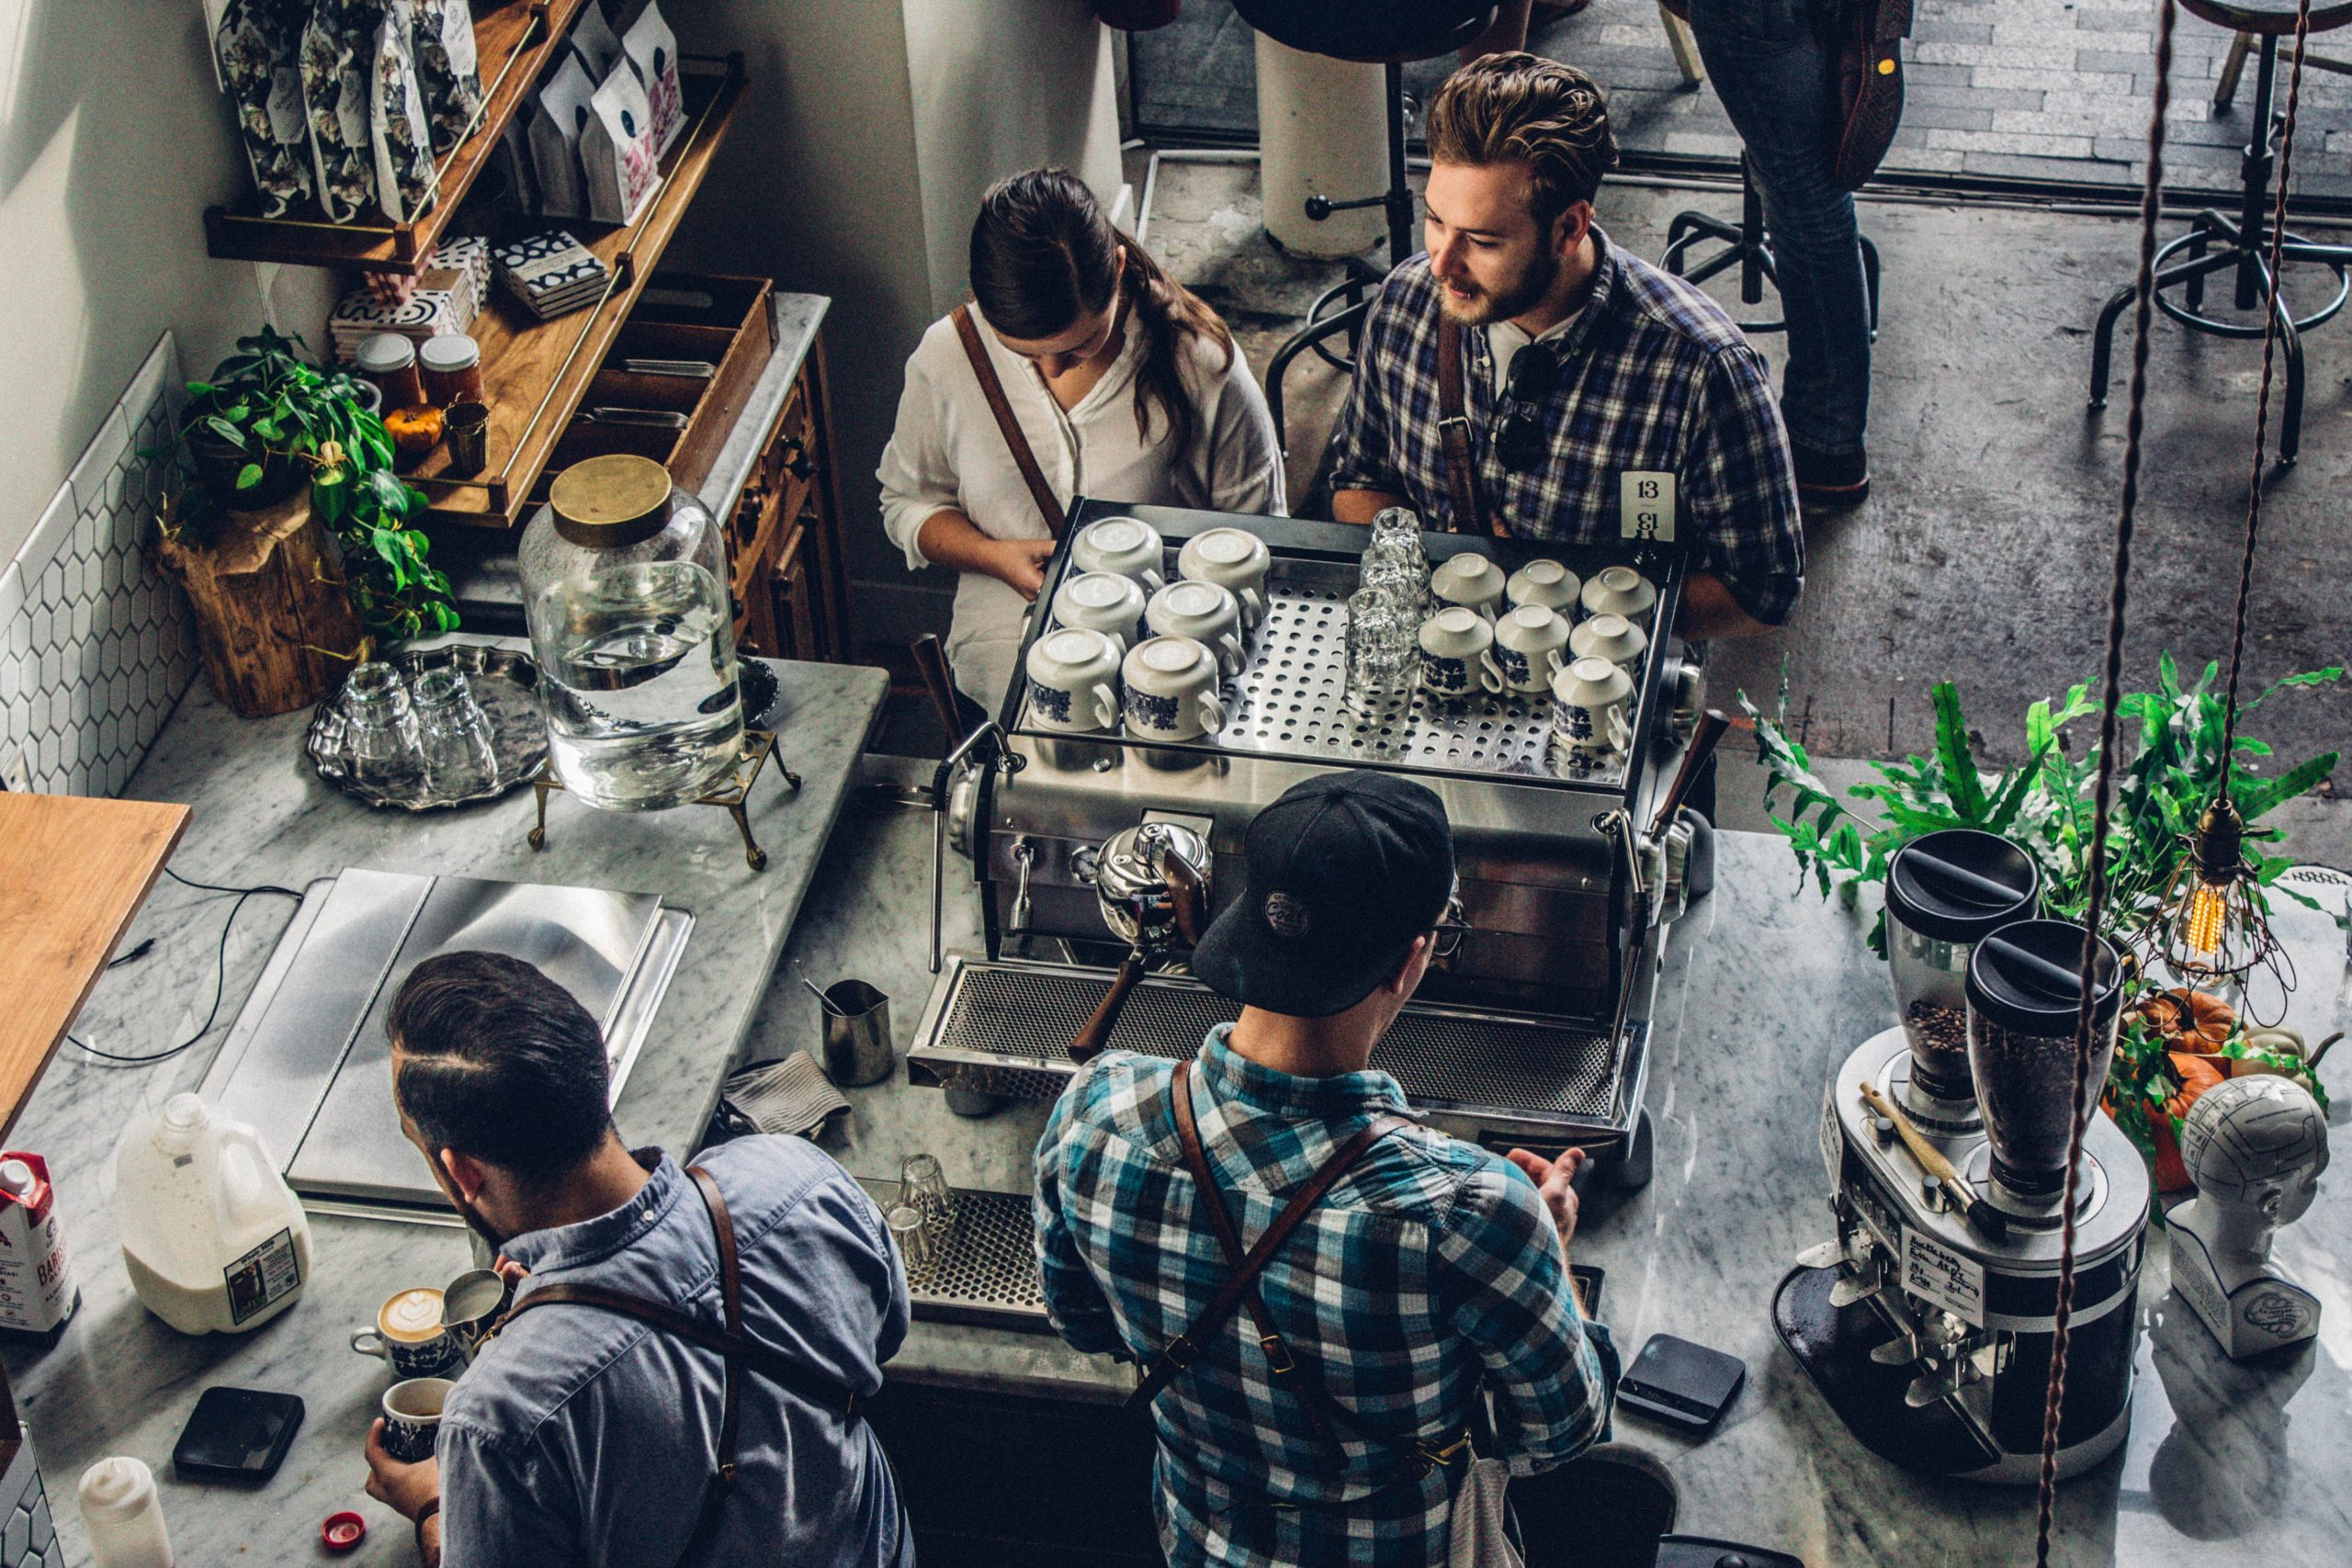 baristas serving coffee to customers over the counter